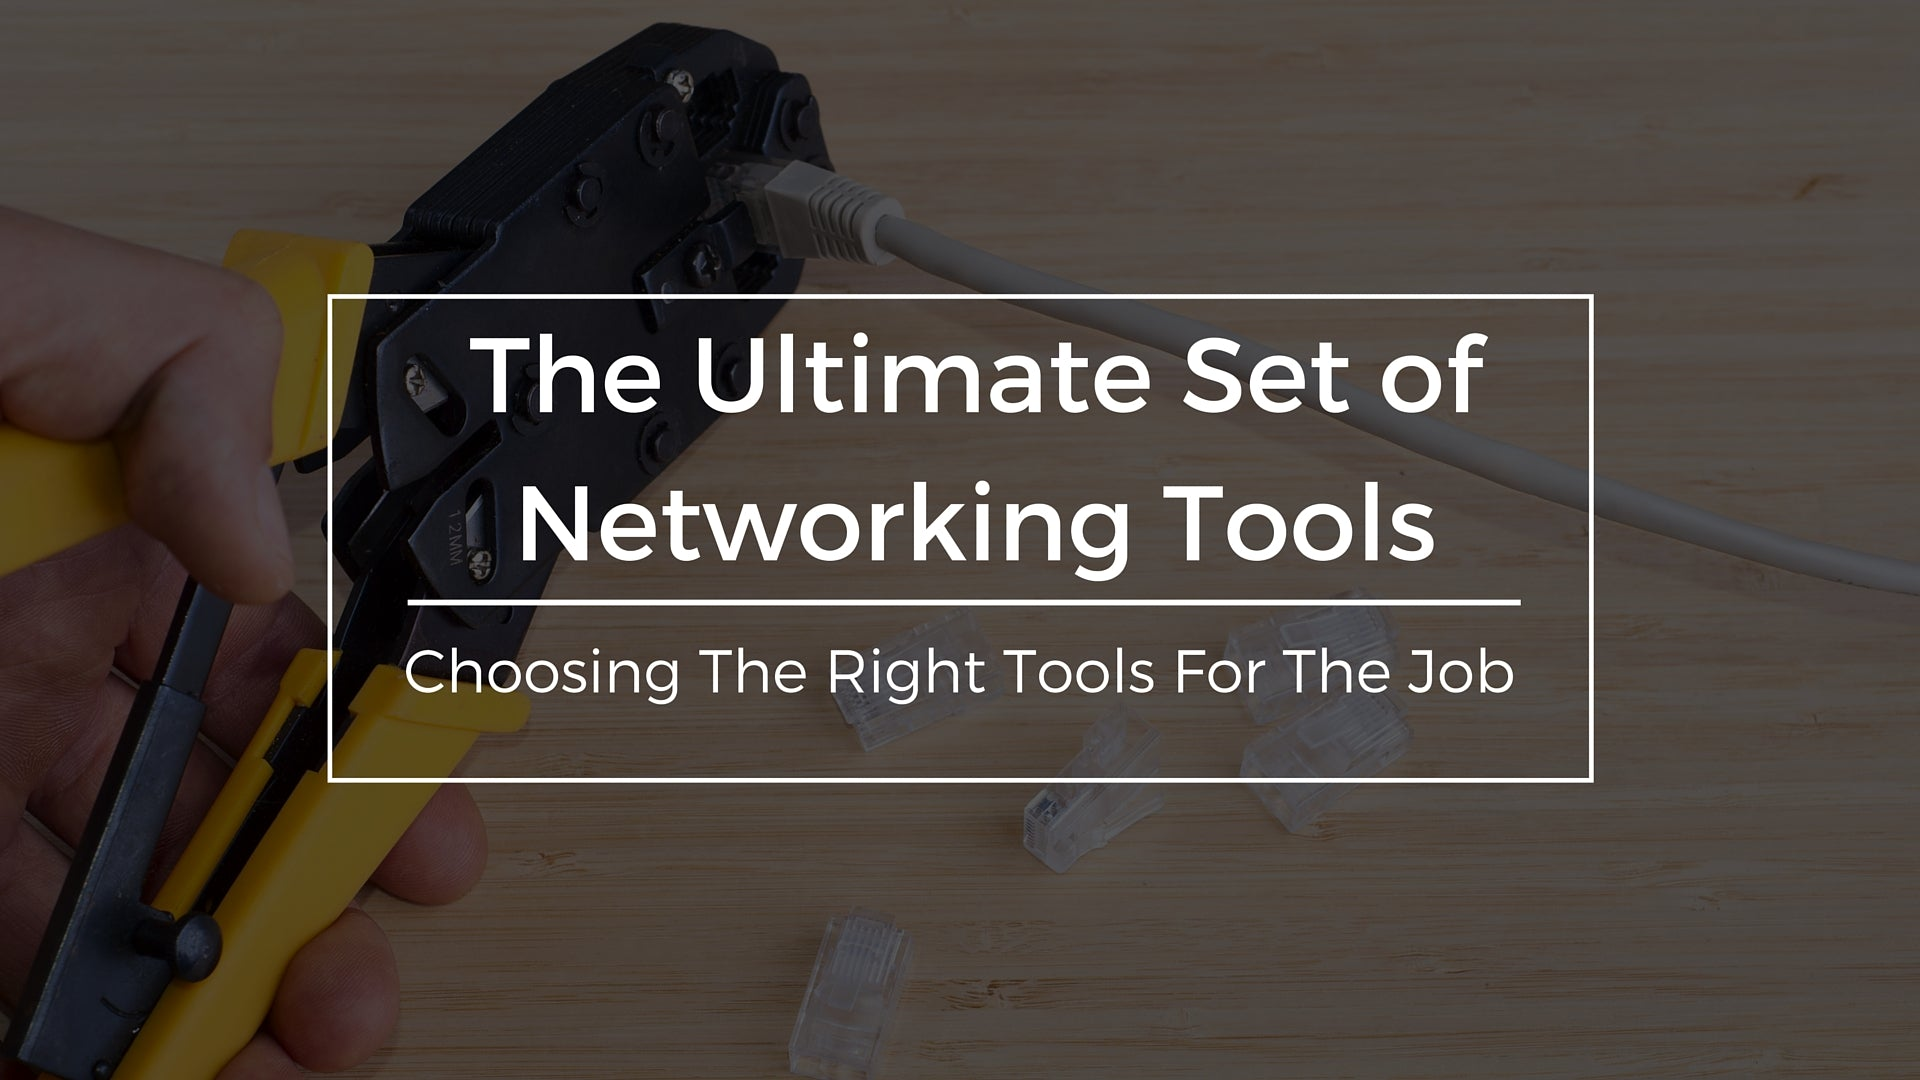 The Ultimate Set of Networking Tools